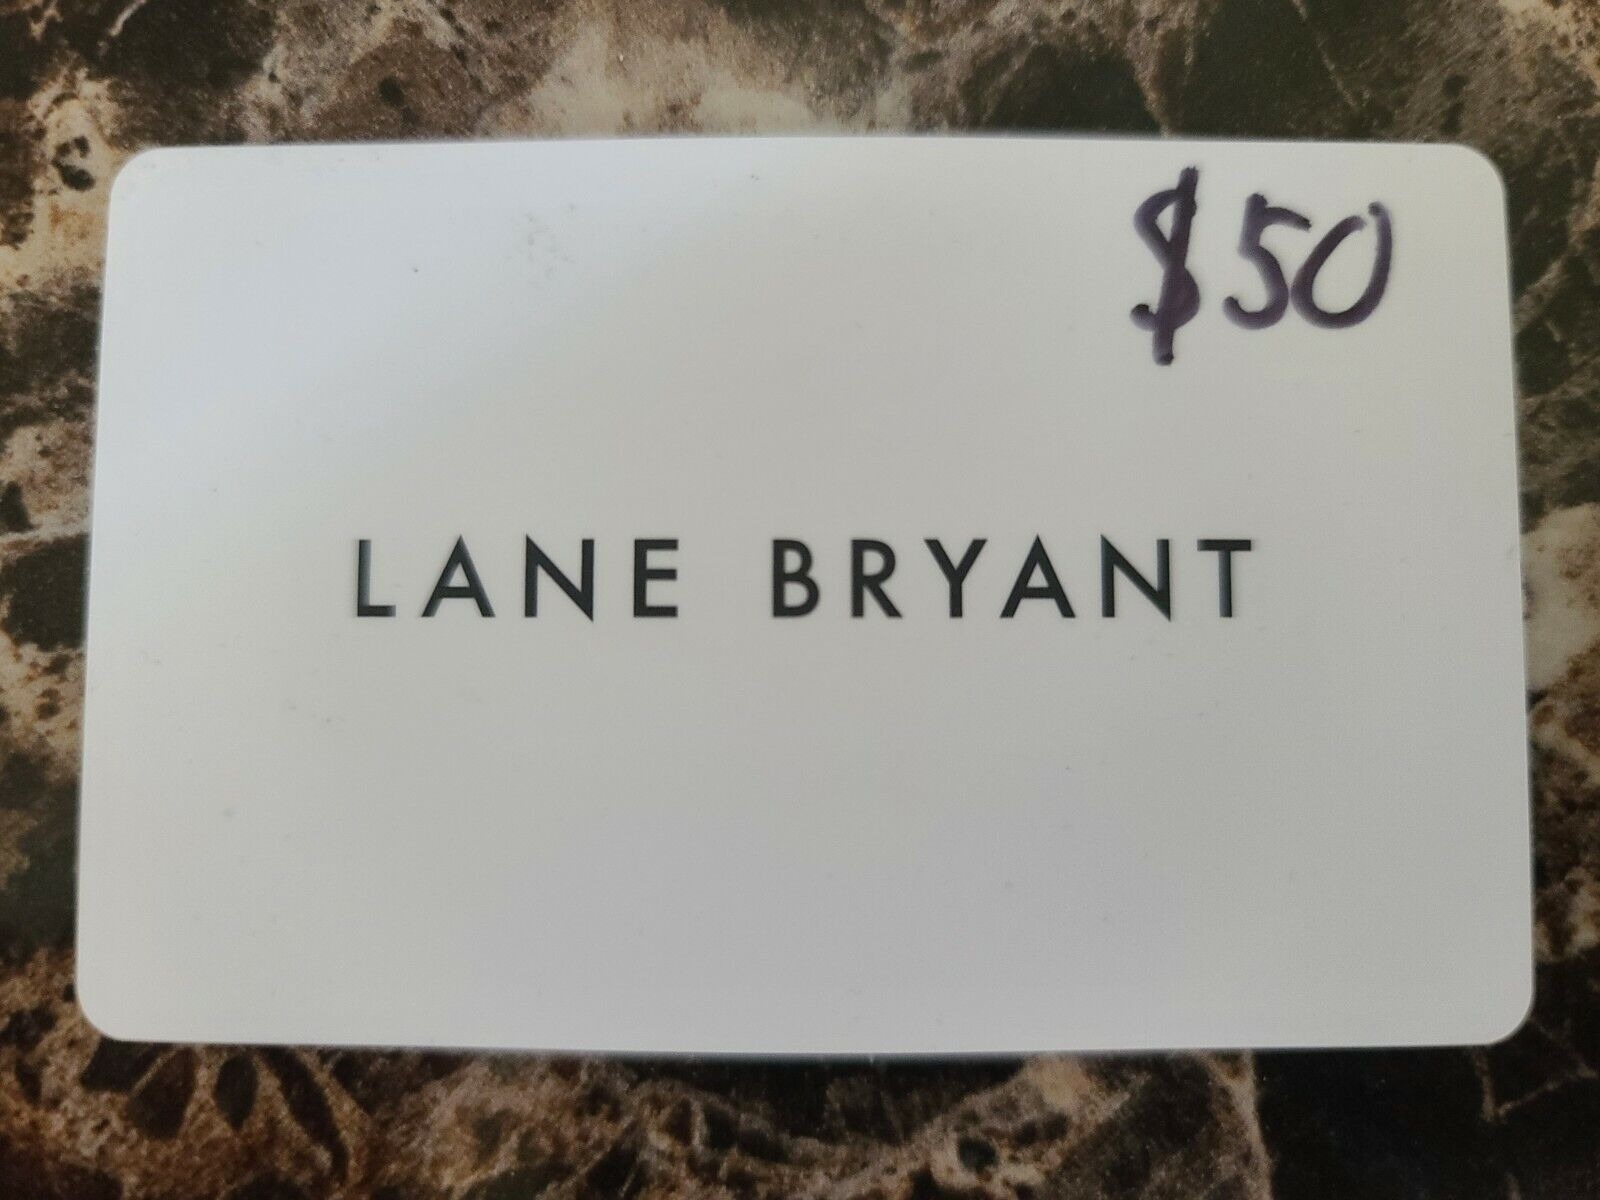 Lane Bryant 50 Gift Card Unused Purchased From Amazon - $31.00